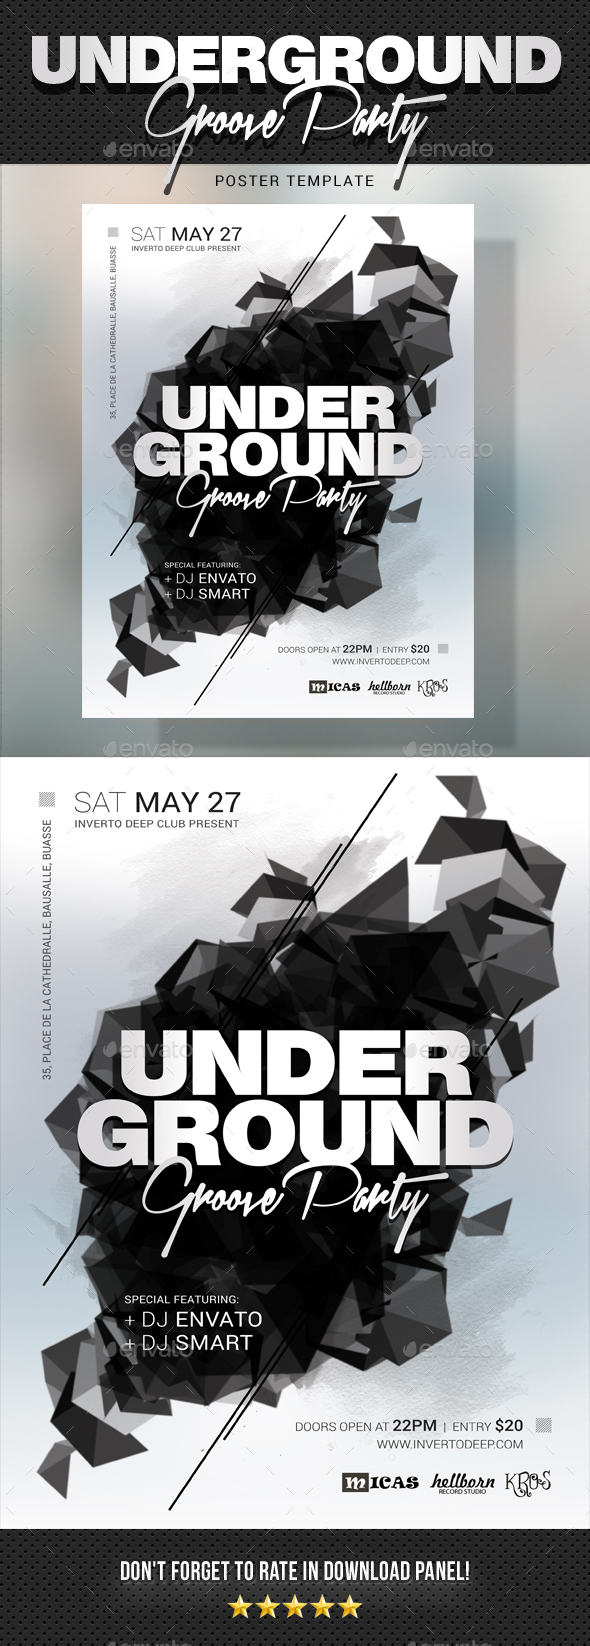 Underground Groove Poster - Signage Print Templates